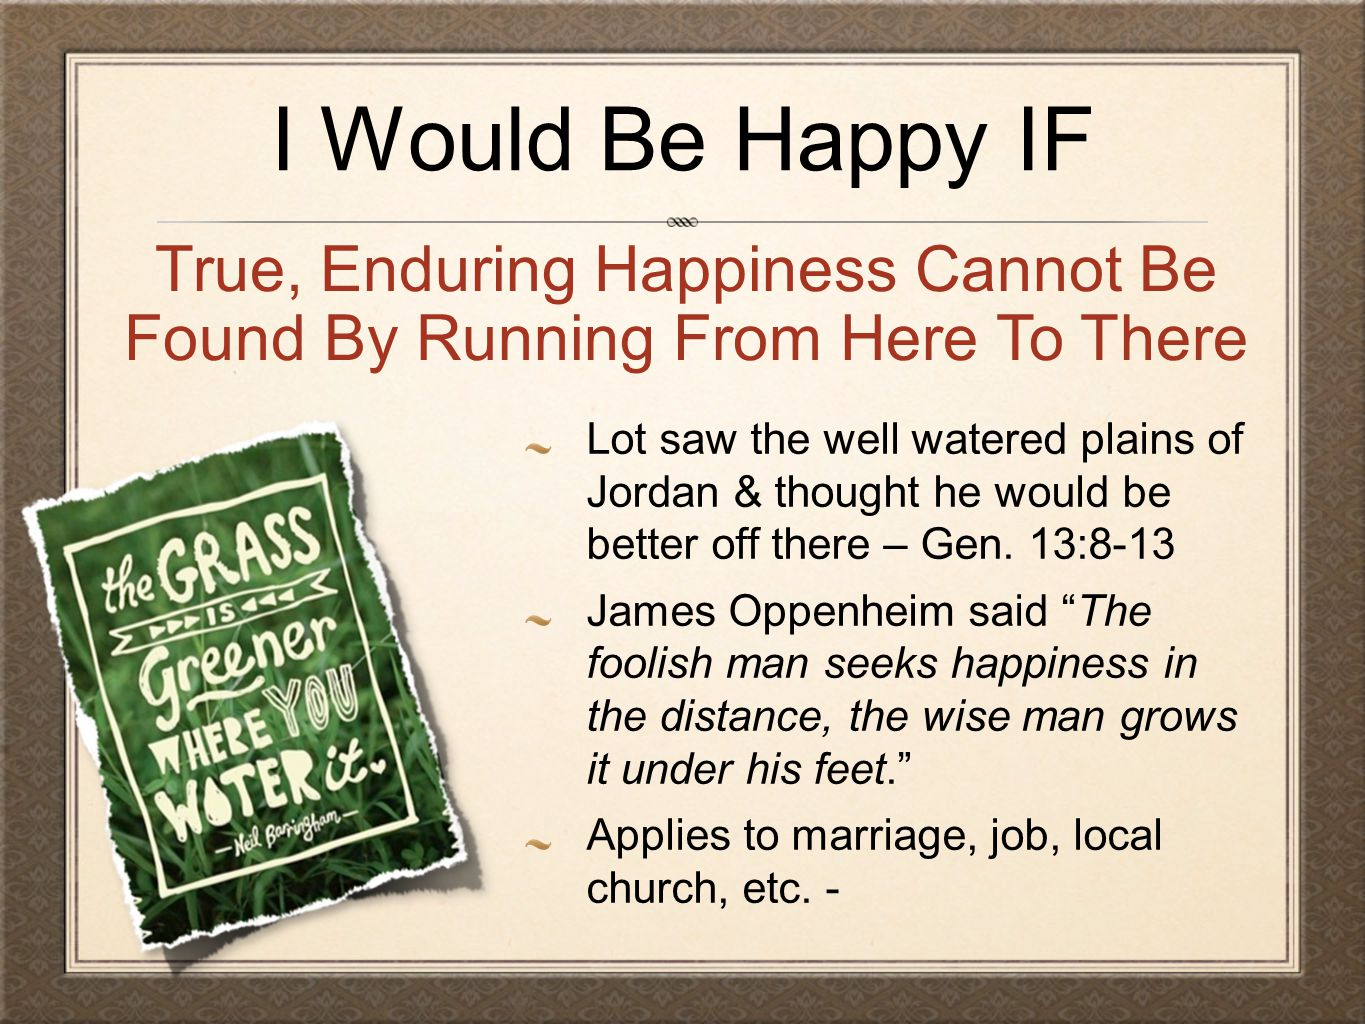 True, Enduring Happiness Cannot Be Found By Running From Here To There